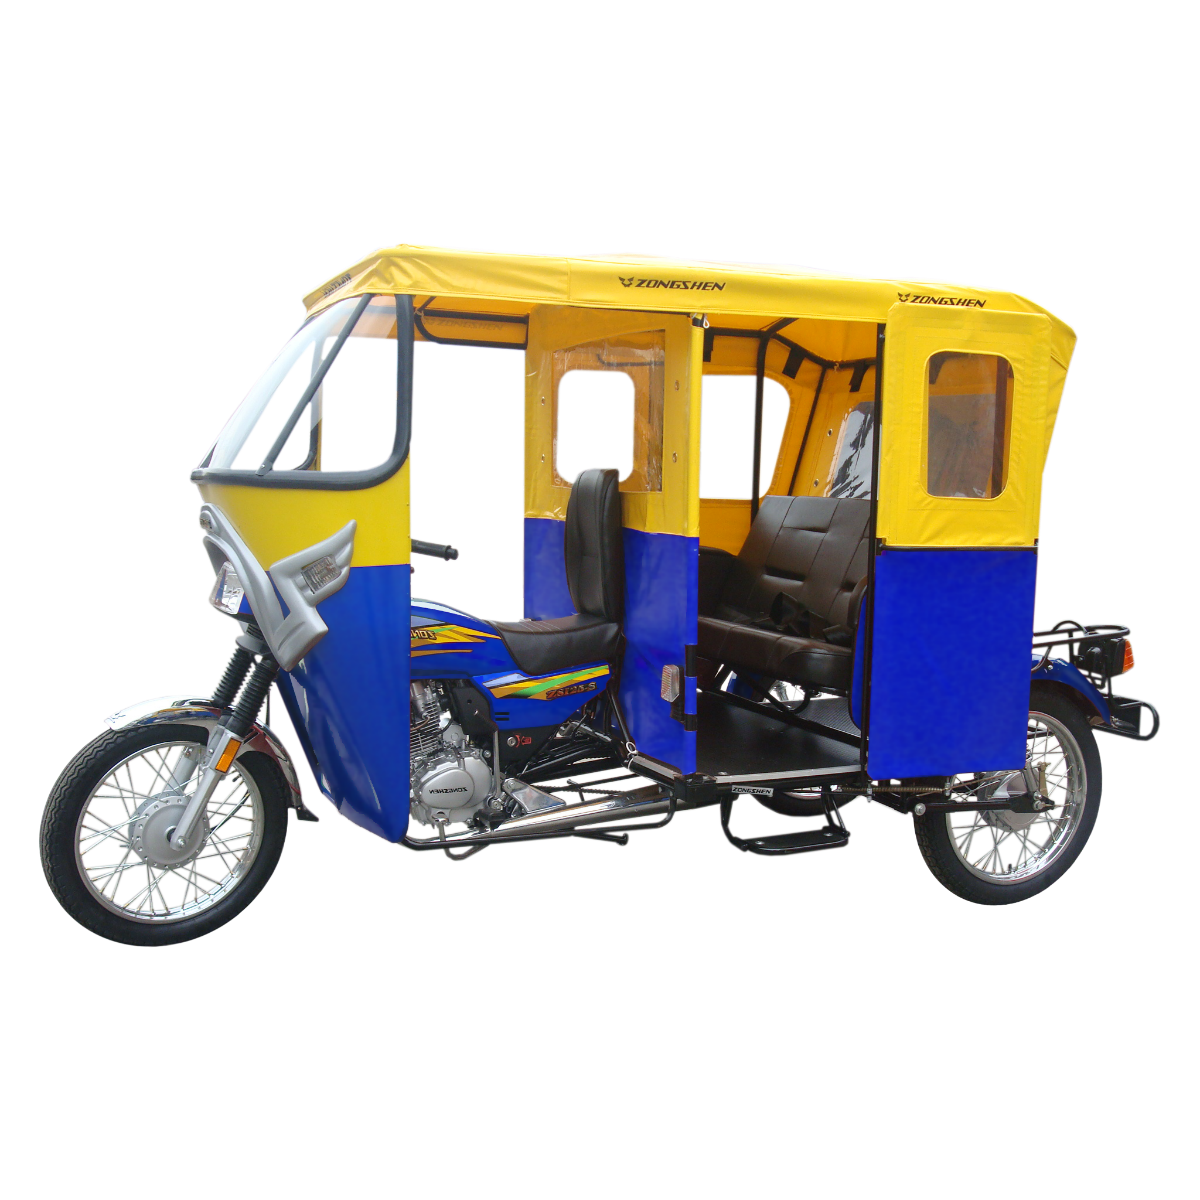 moto taxi In rwanda, moto-taxi drivers have secured better wages and social protection, thanks to the organising efforts of cooperatives and trade unions.